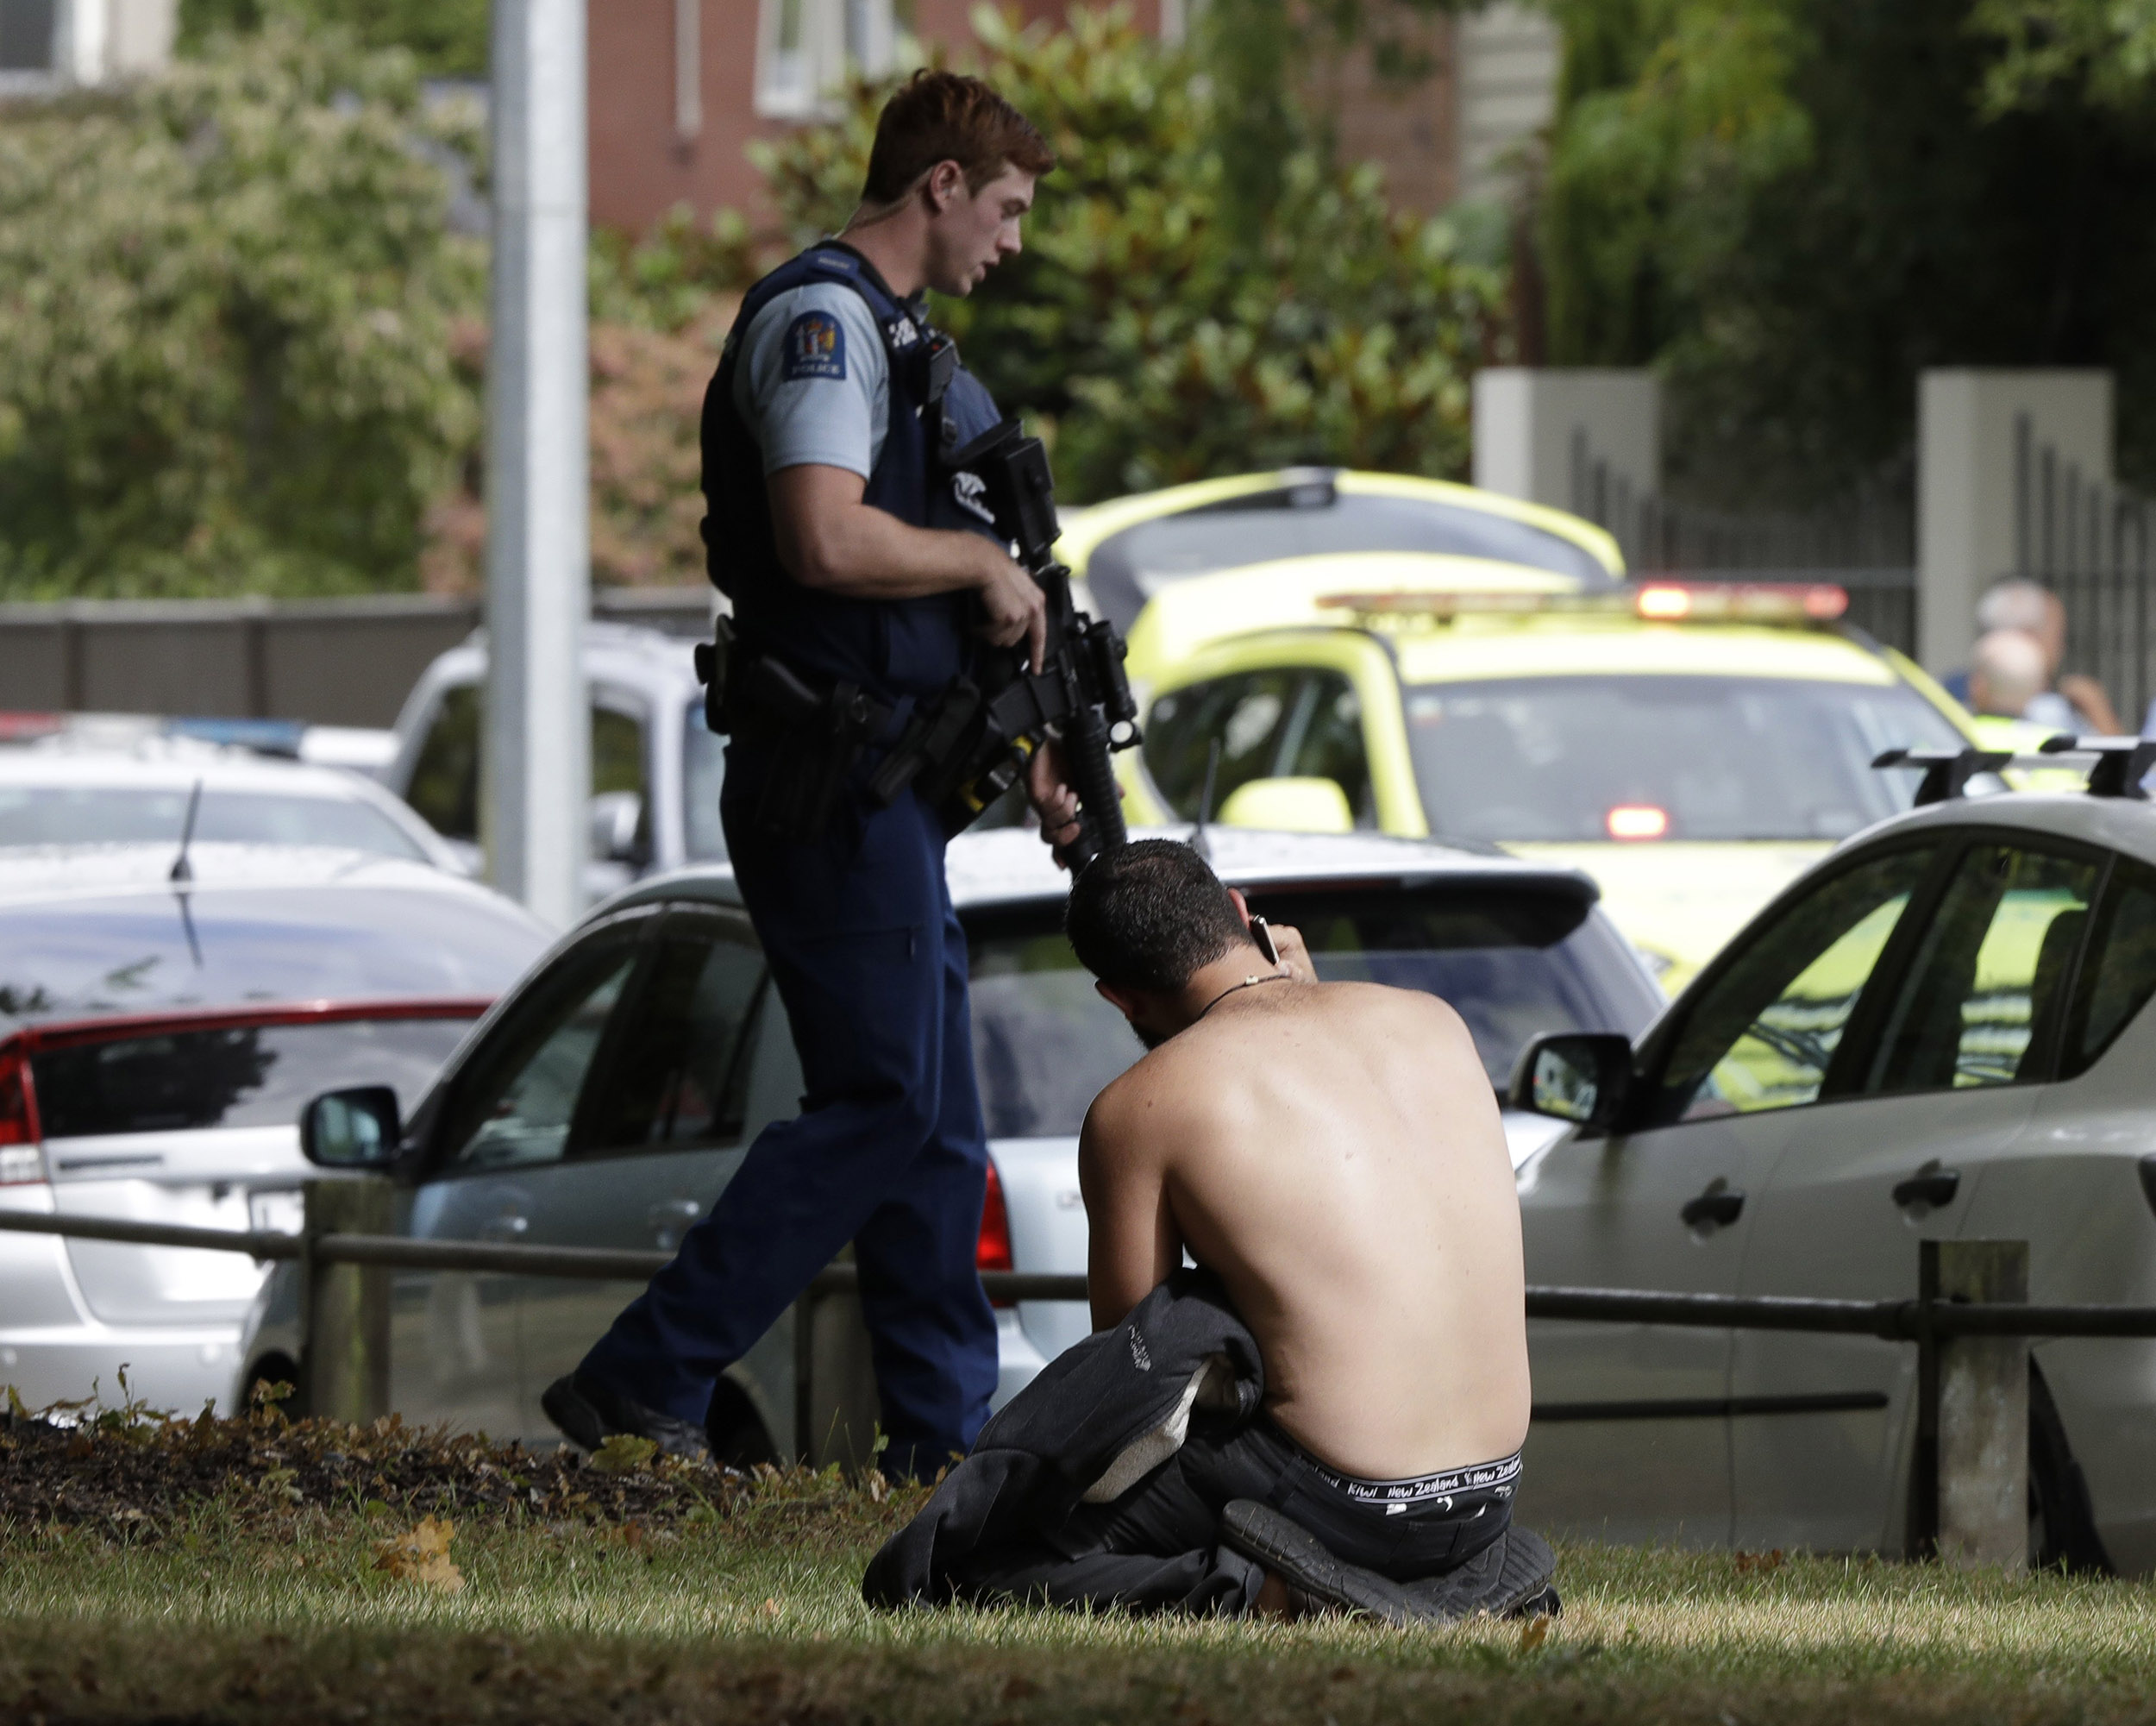 New Zealand Mosque Attack: Current Affairs And Trending Events On Flipboard By A